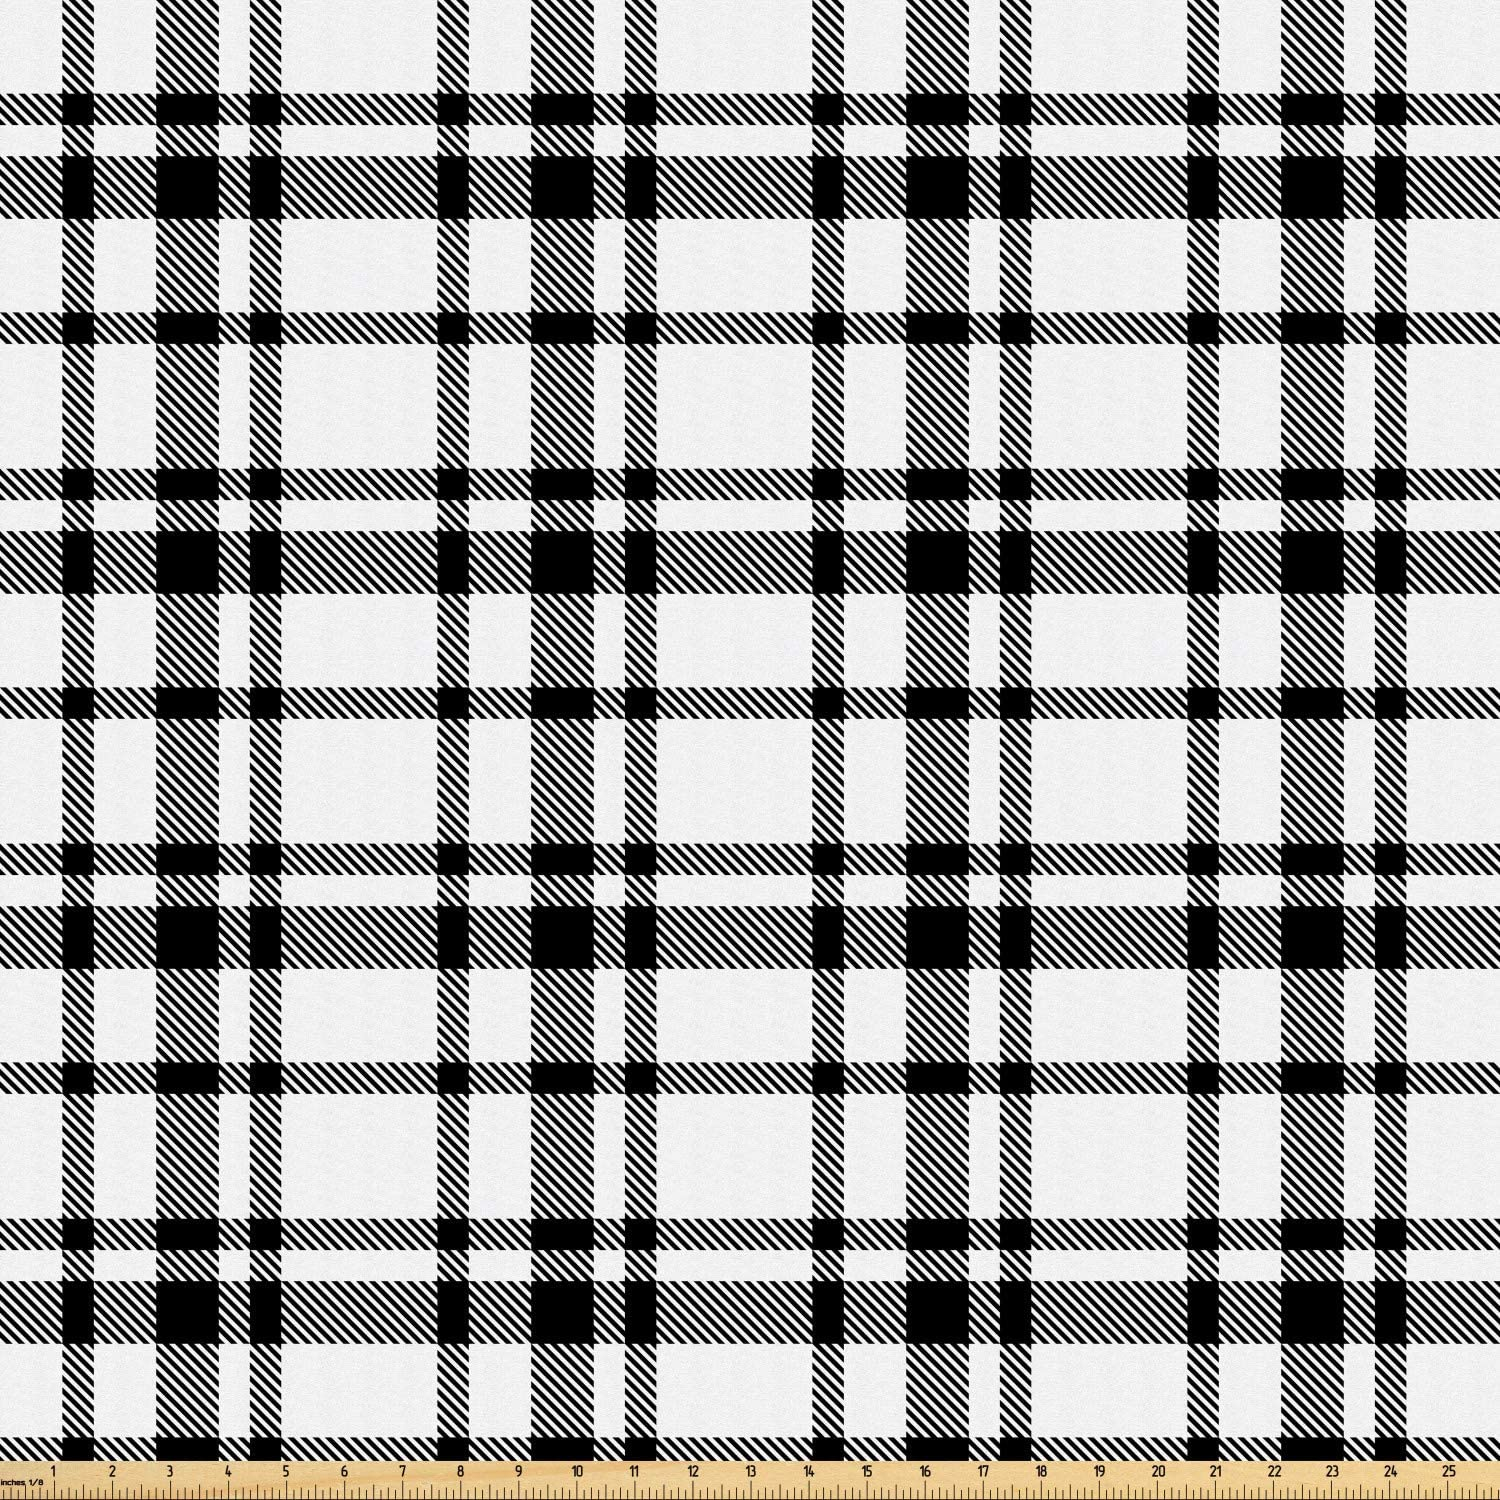 Ambesonne Plaid Fabric by The Yard, Black and White Tartan Pattern Graphic Grid Art Design with Traditional Influences, Microfiber Fabric for Arts and Crafts Textiles & Decor, Black White